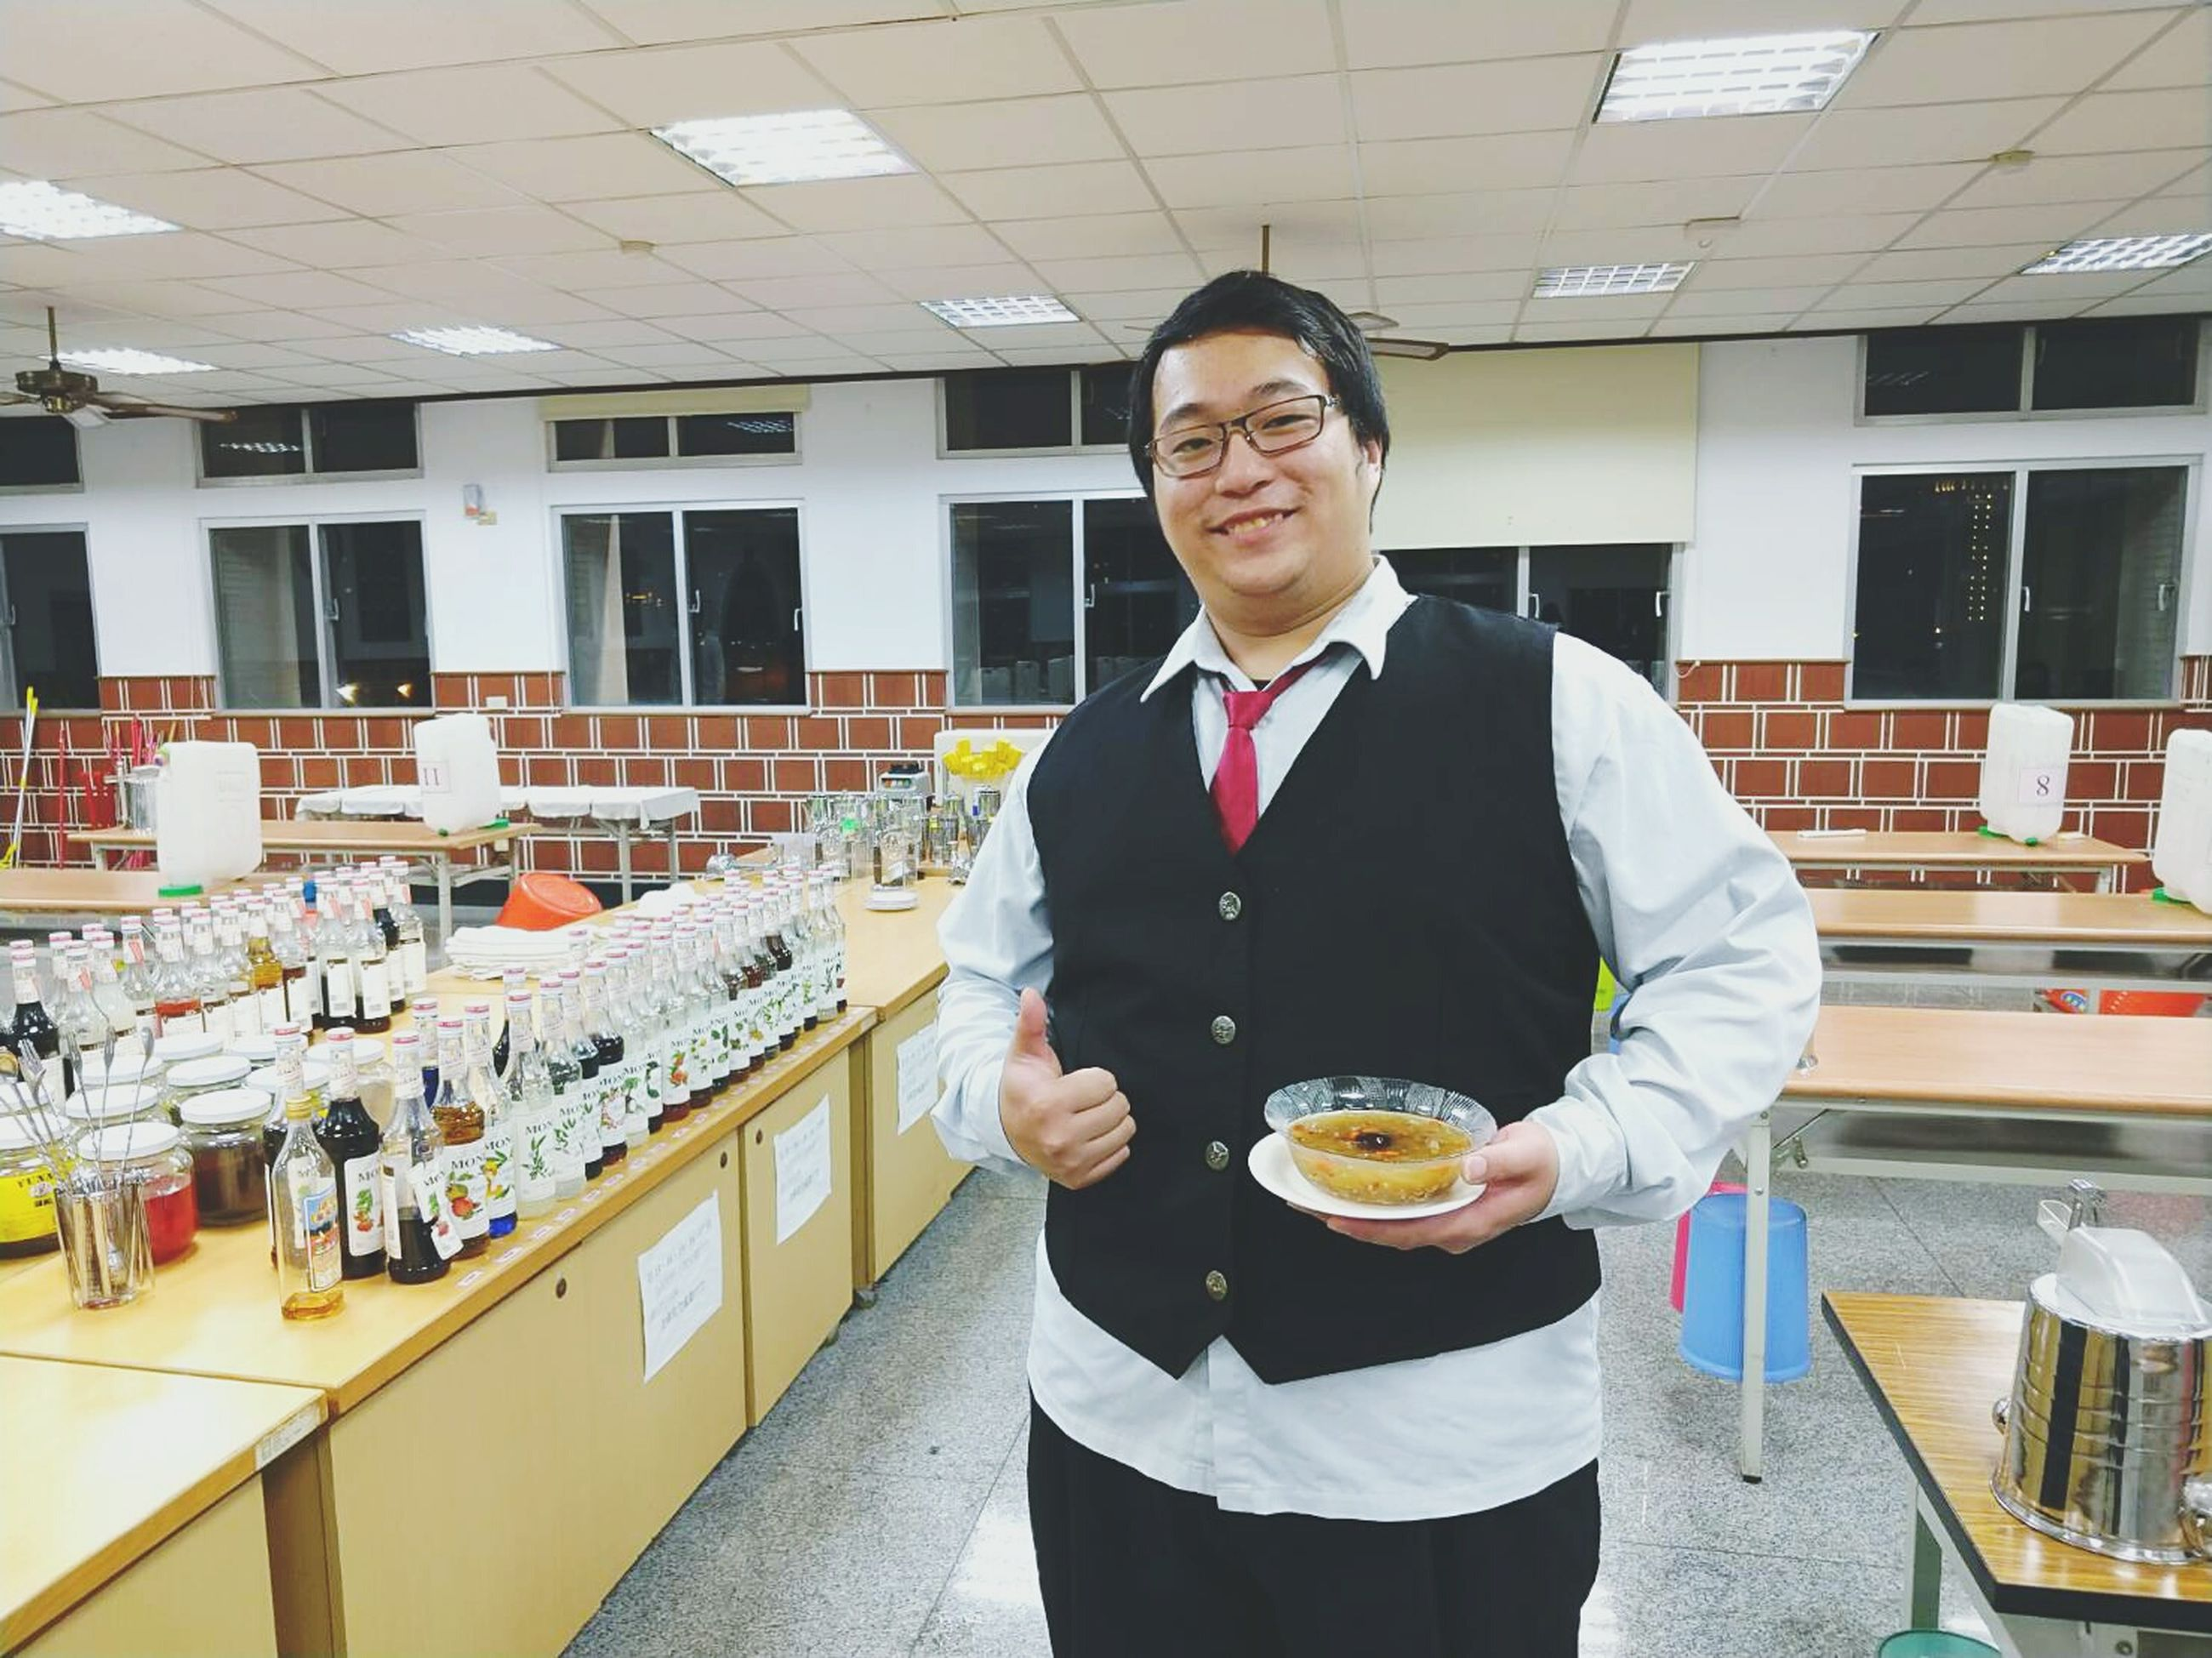 food and drink, one person, food, looking at camera, standing, holding, front view, real people, smiling, portrait, men, indoors, uniform, service, occupation, young adult, day, student, freshness, people